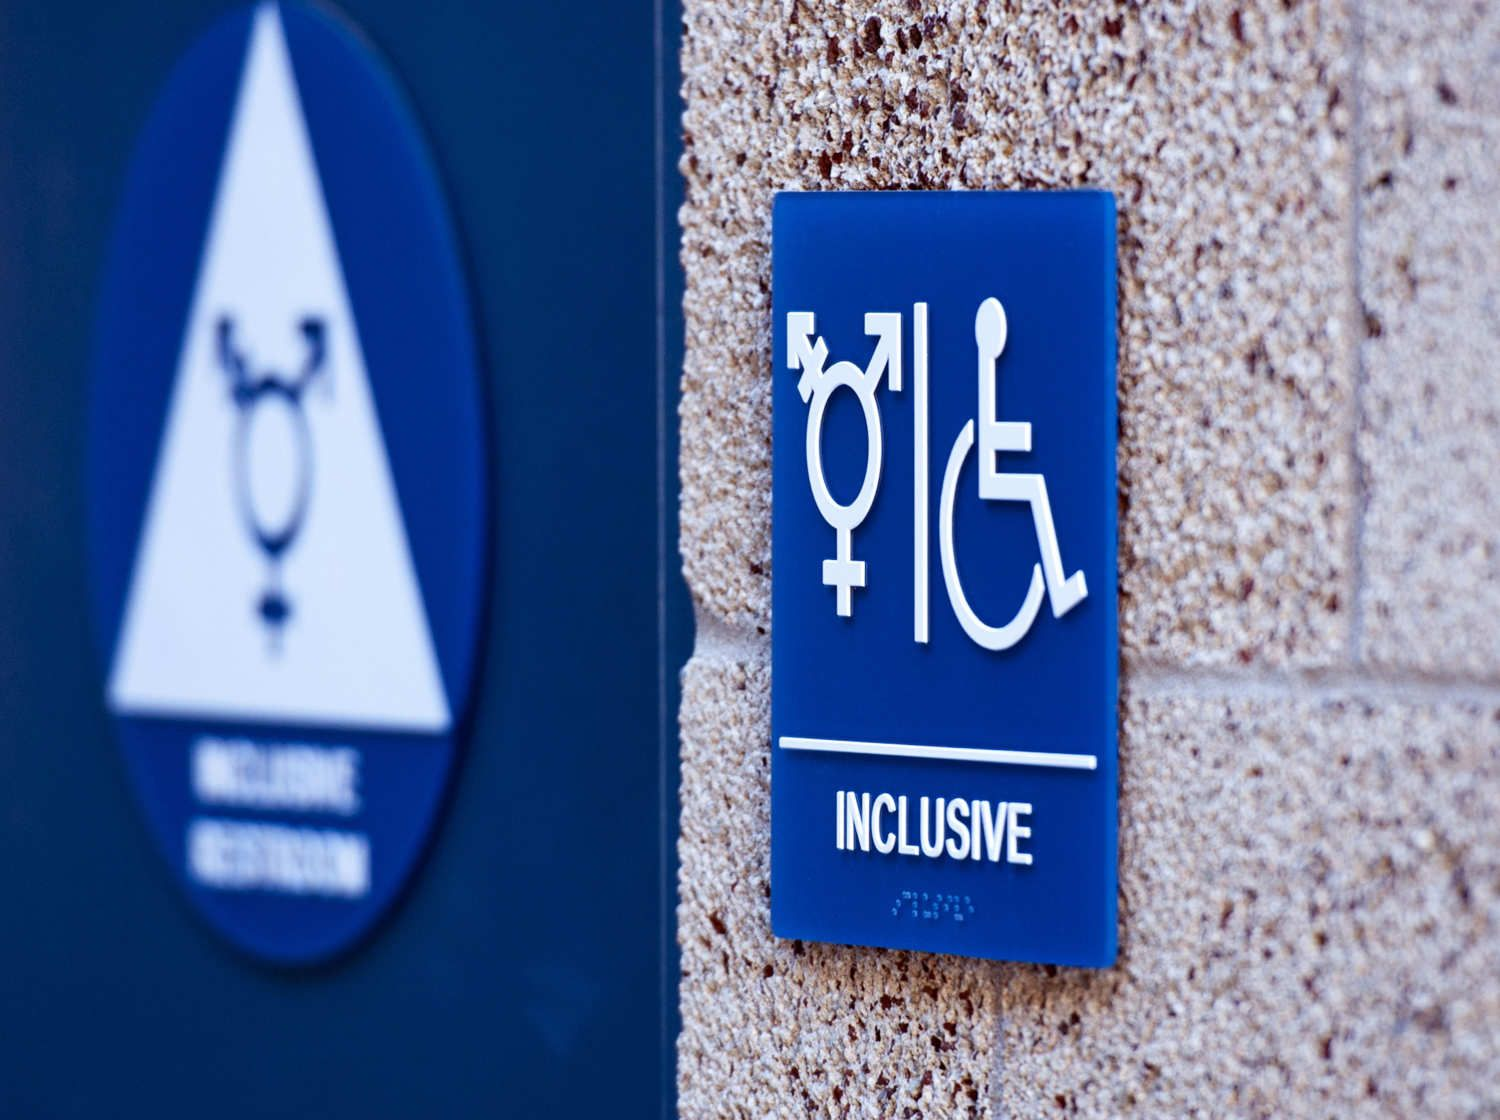 neutral s sales signs gender sign limited toilet cyo tane restroom bathroom tag product safety men